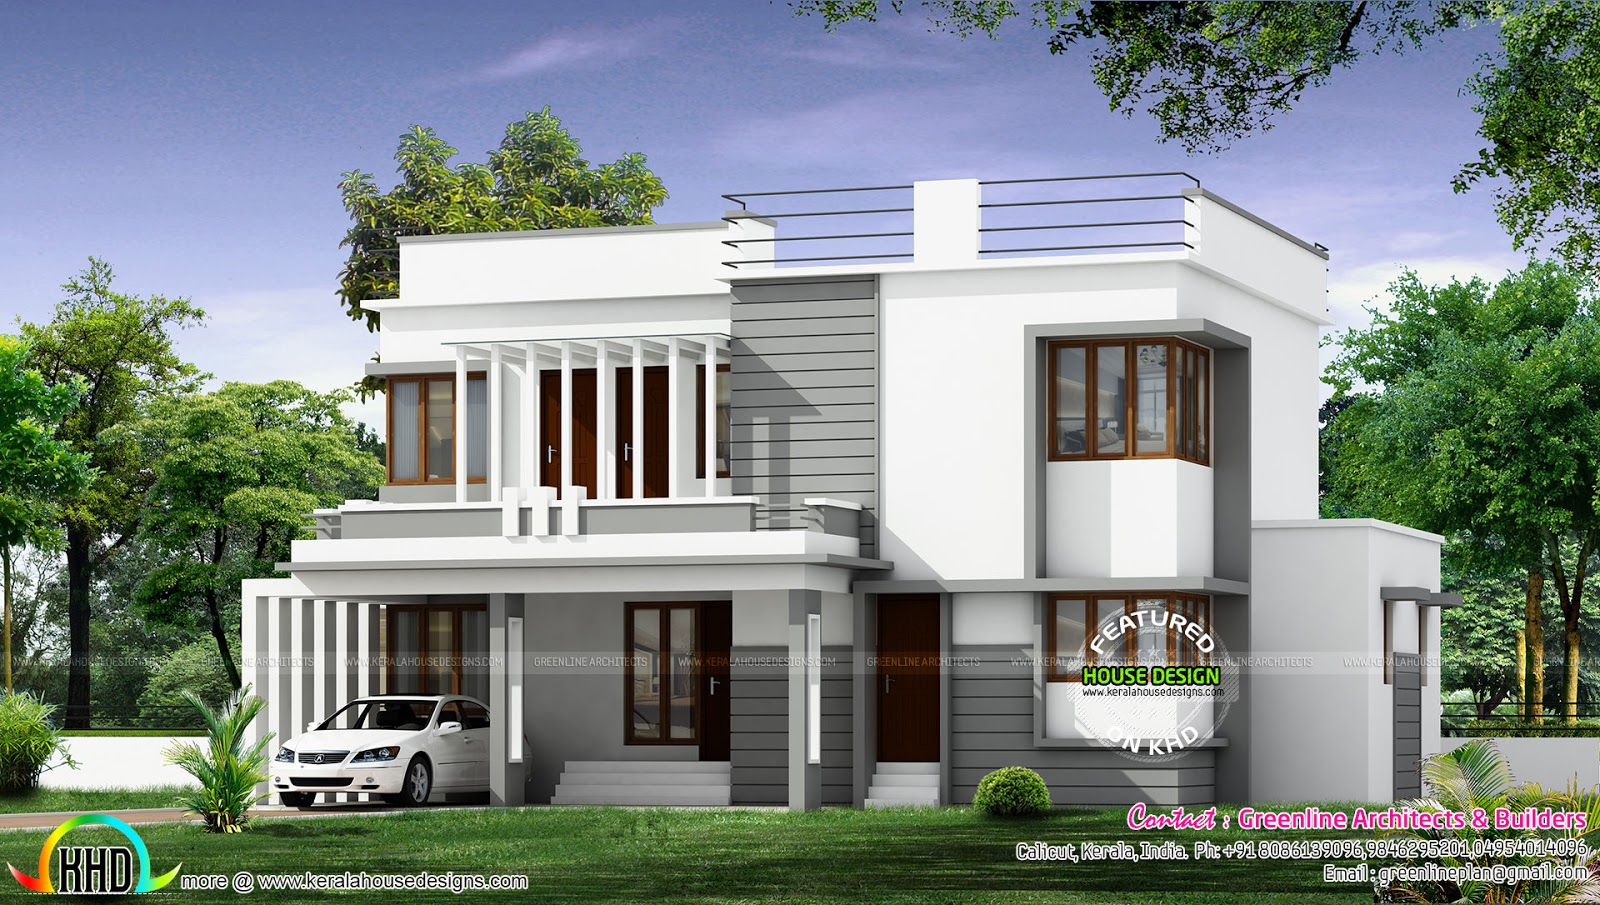 New modern house architecture kerala home design and for New modern house design